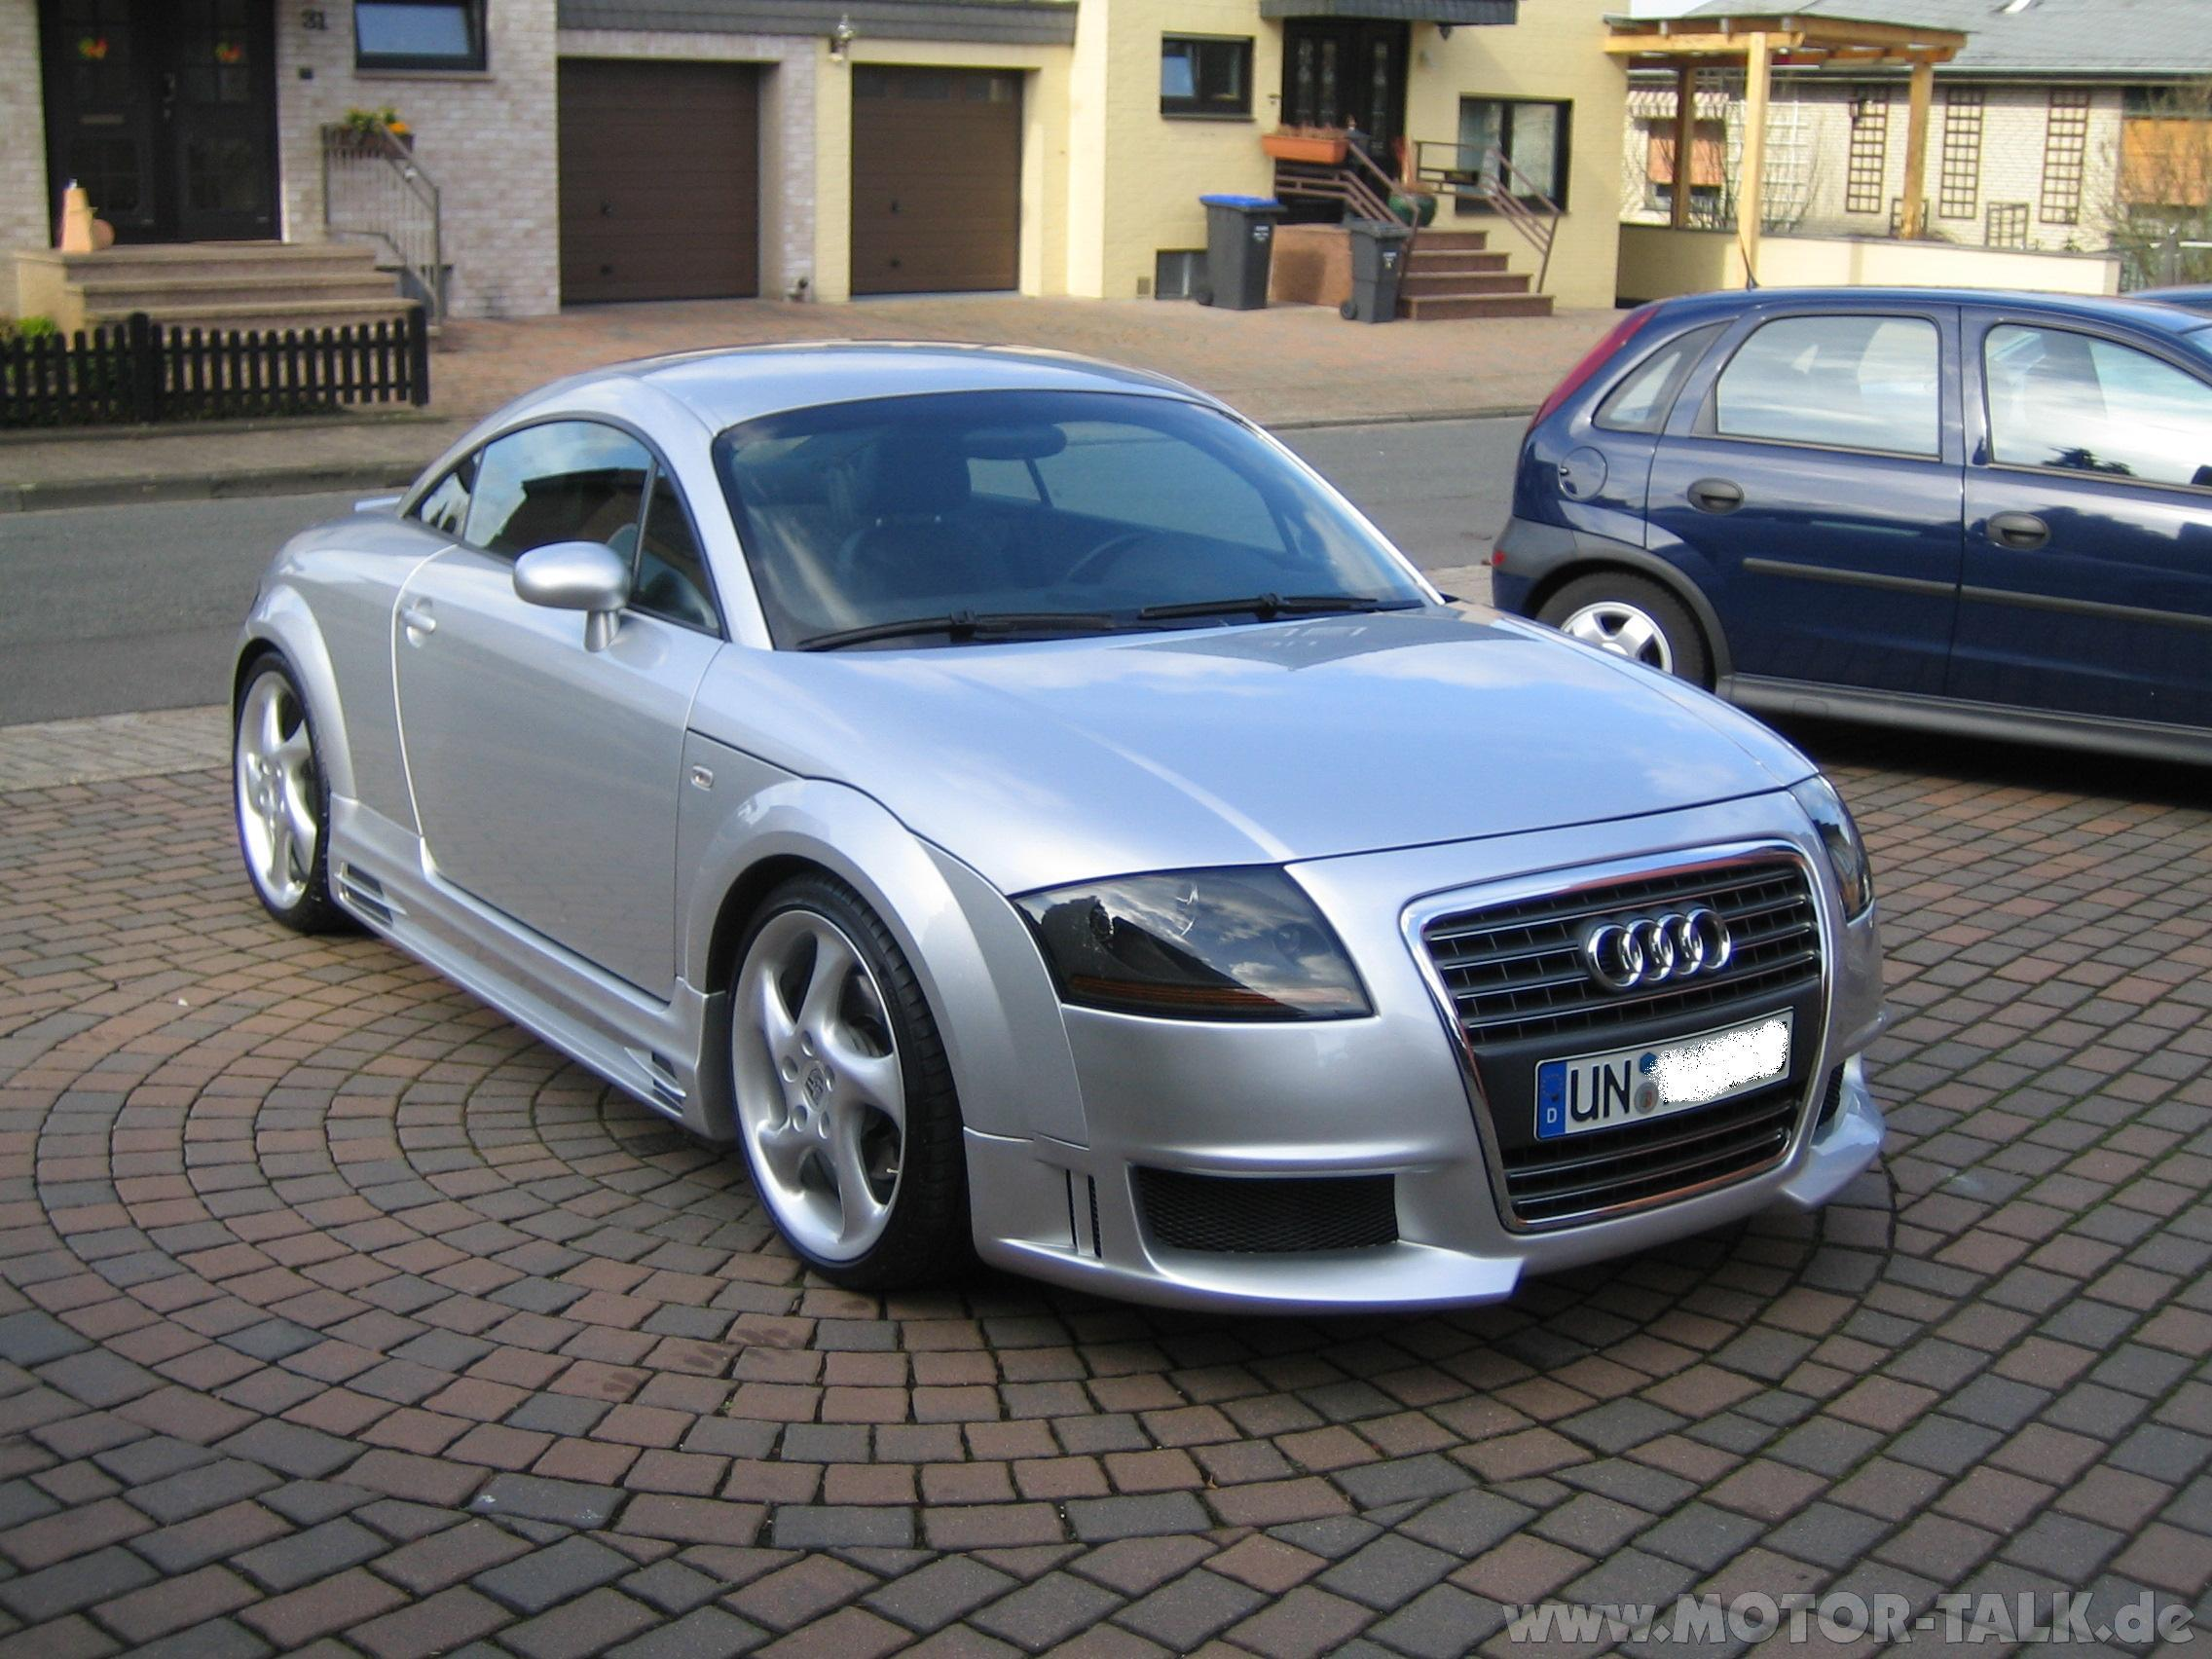 My Perfect Audi Tt 3dtuning Probably The Best Car Configurator